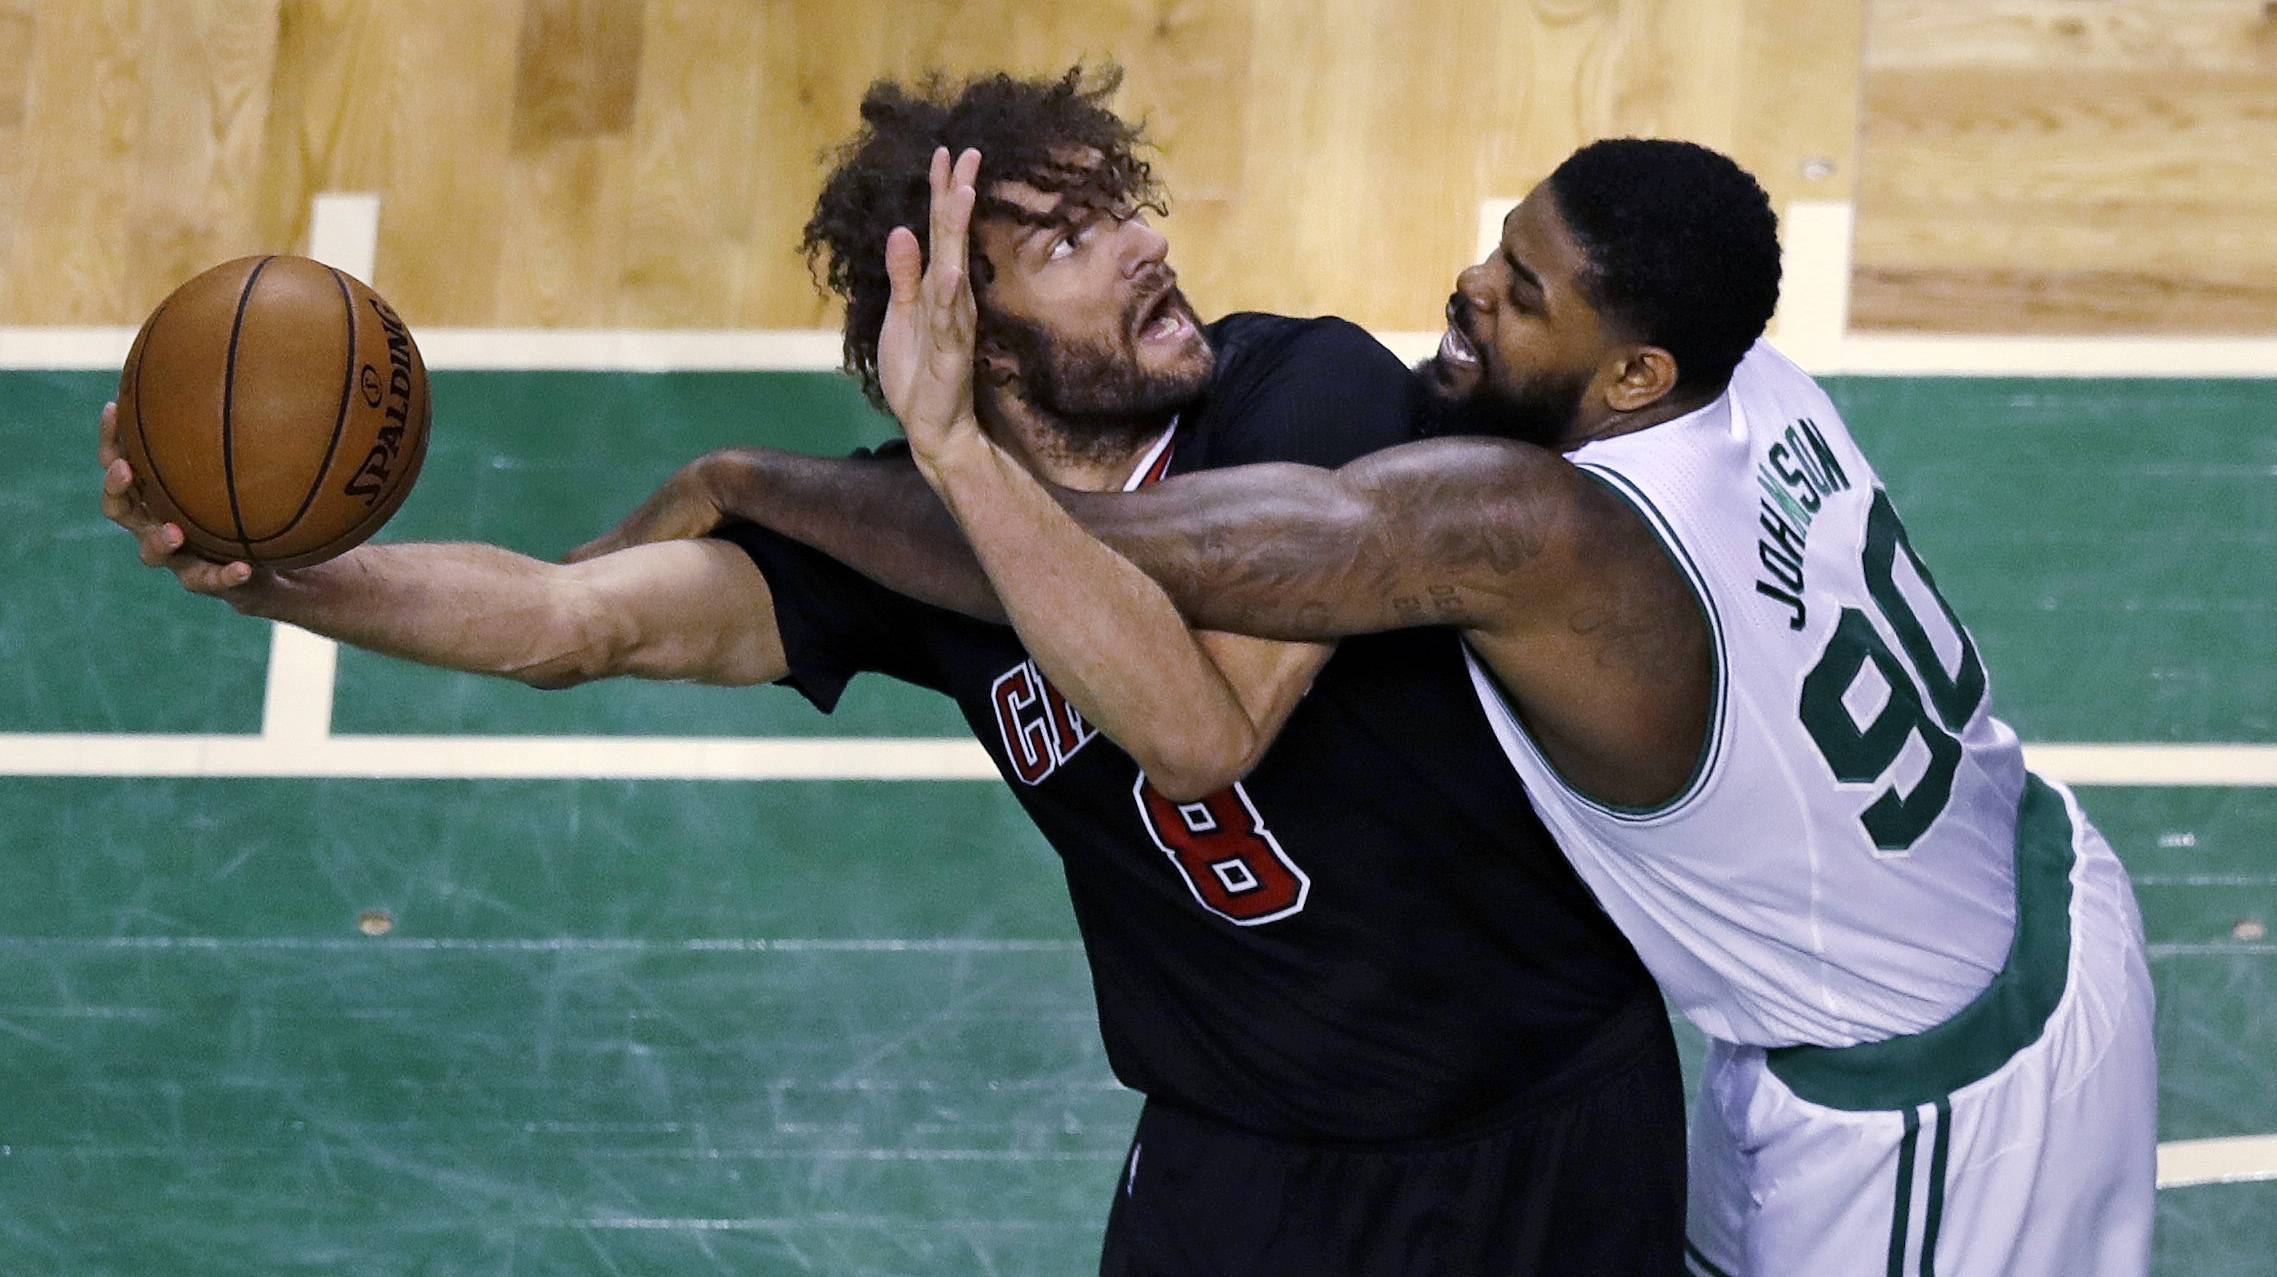 Boston Celtics forward Amir Johnson (90) fouls Chicago Bulls center Robin Lopez (8) during the first quarter of a first-round NBA playoff basketball game in Boston, Tuesday, April 18, 2017.